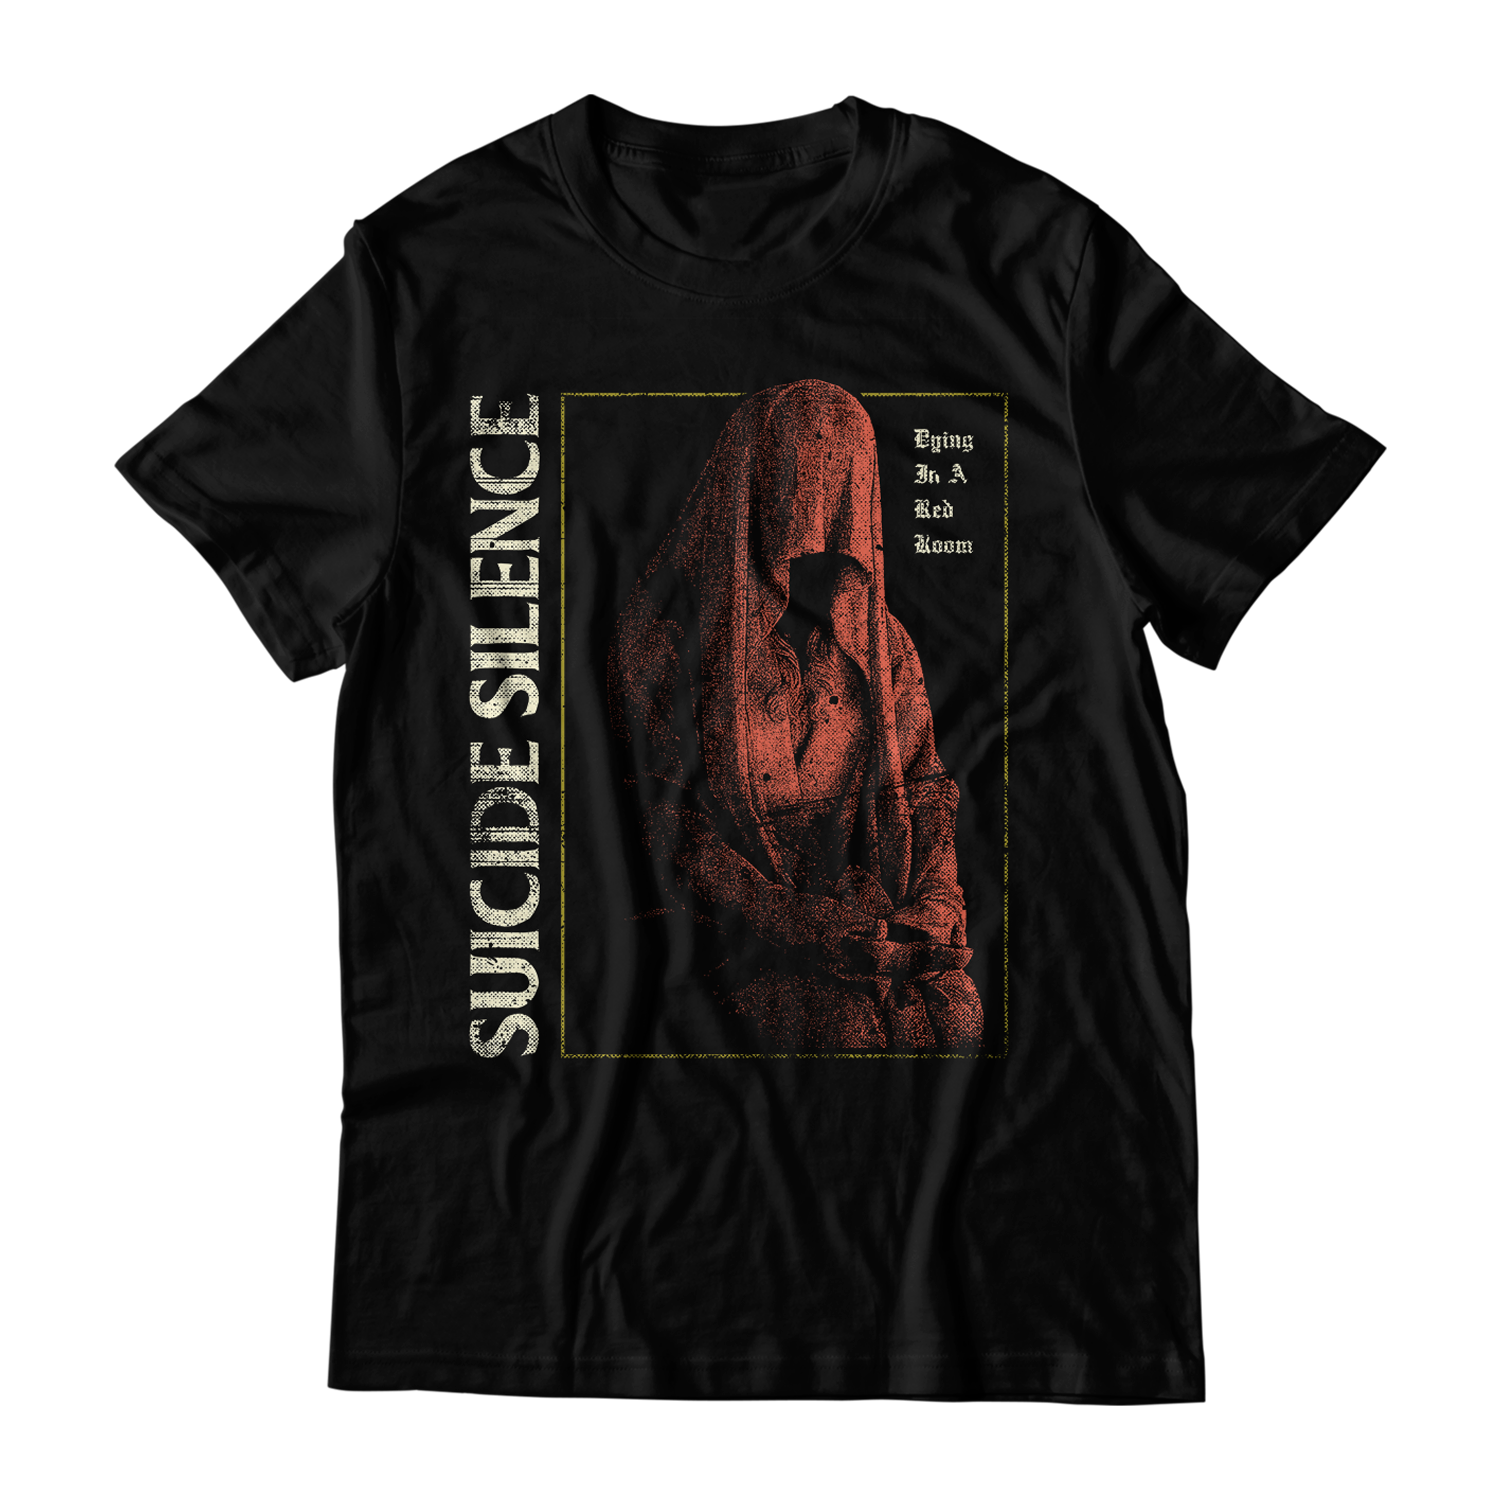 Official Suicide Silence Store 'Red Room' Tee, Official Merch, Official Store, Official Shop, Hoodies, Official Merchandise, T-shirts, Hoodies, Jackets, Shirts, Mitch Lucker, killermerch.com, Killer Merch